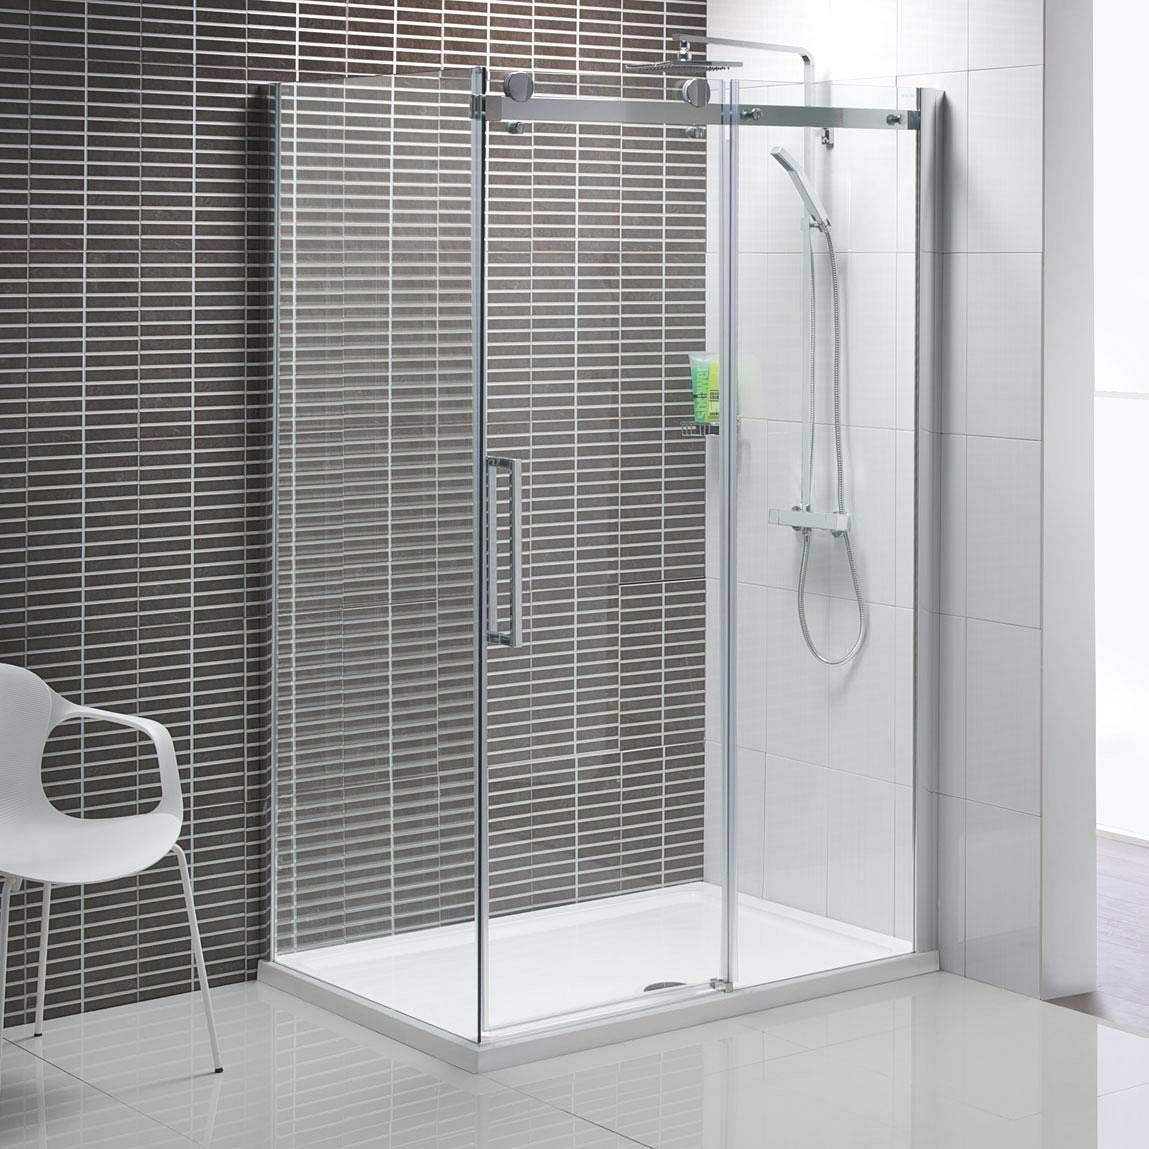 Merlyn 8 series sliding door amp inline panel - V8 Frameless Sliding Shower Enclosure 1200 X 900